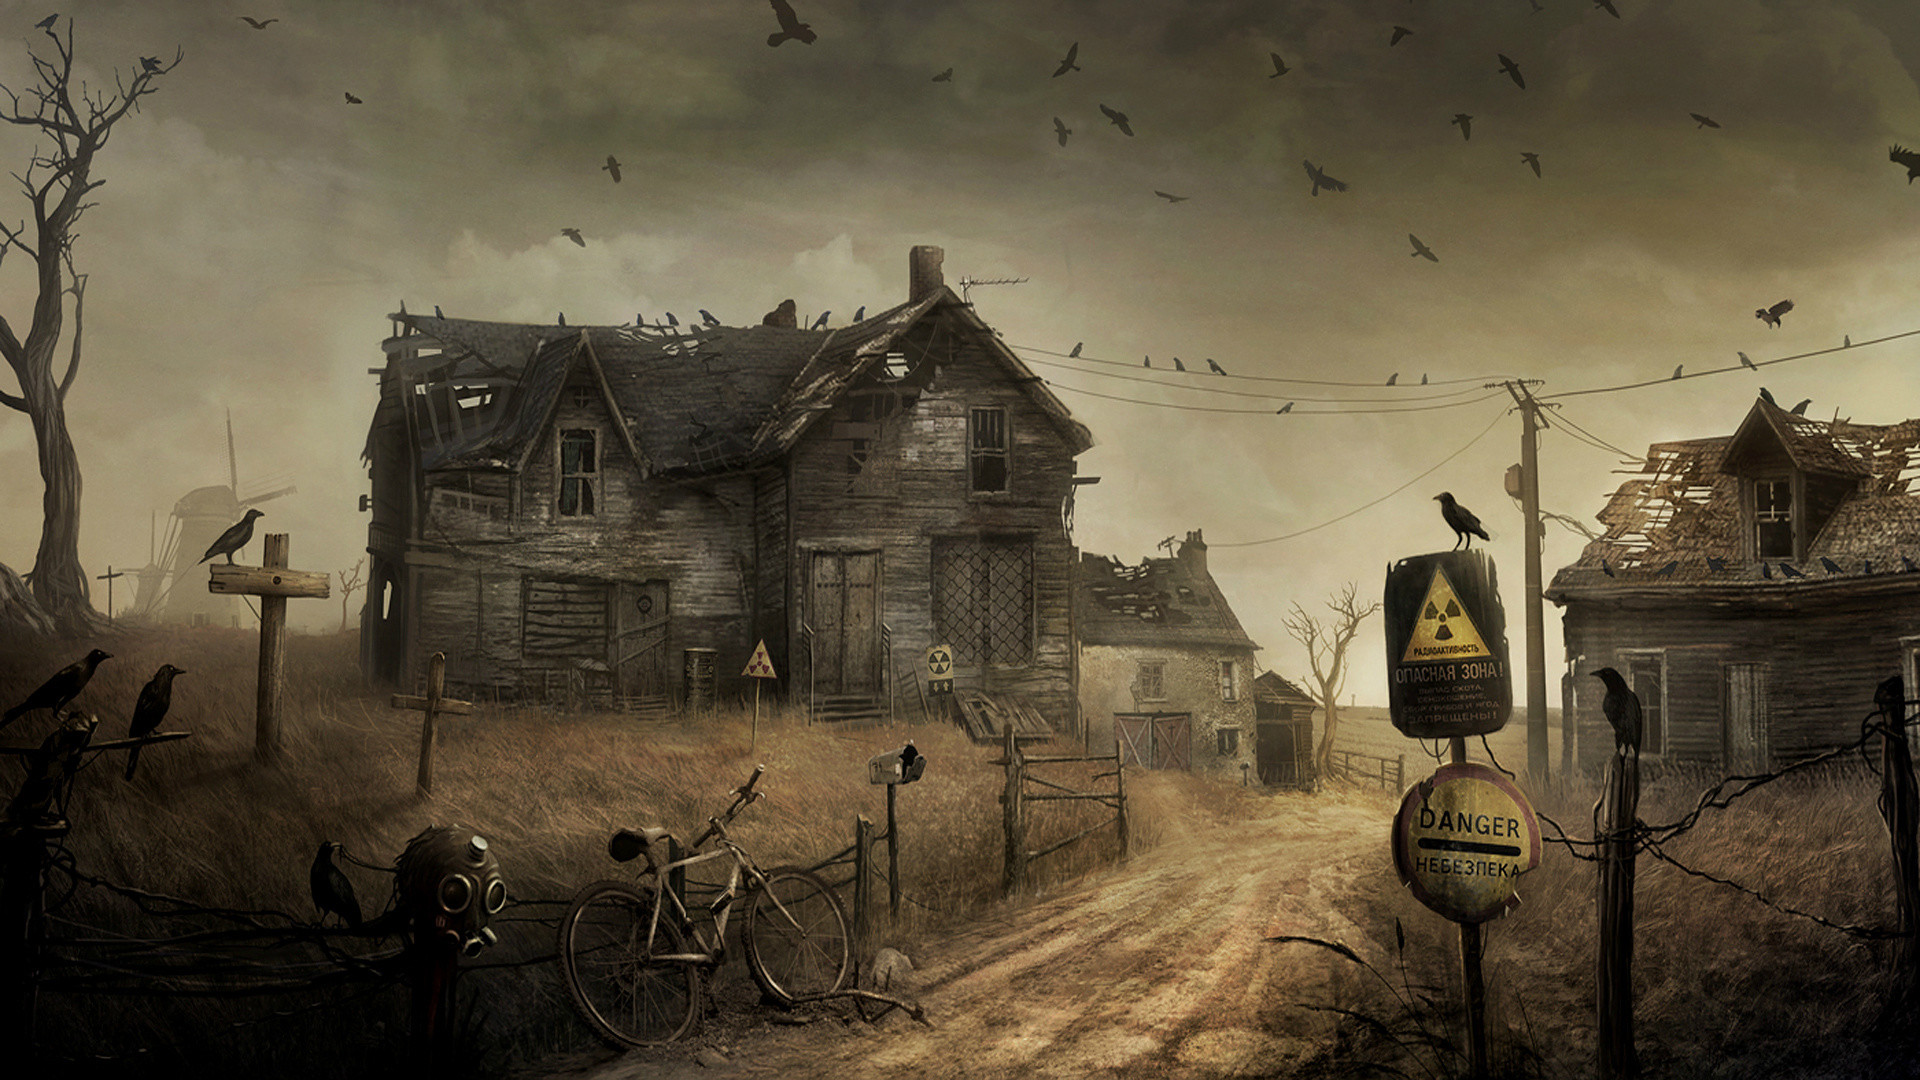 After Apocalypse Dark House Wallpapers HD / Desktop and Mobile Backgrounds